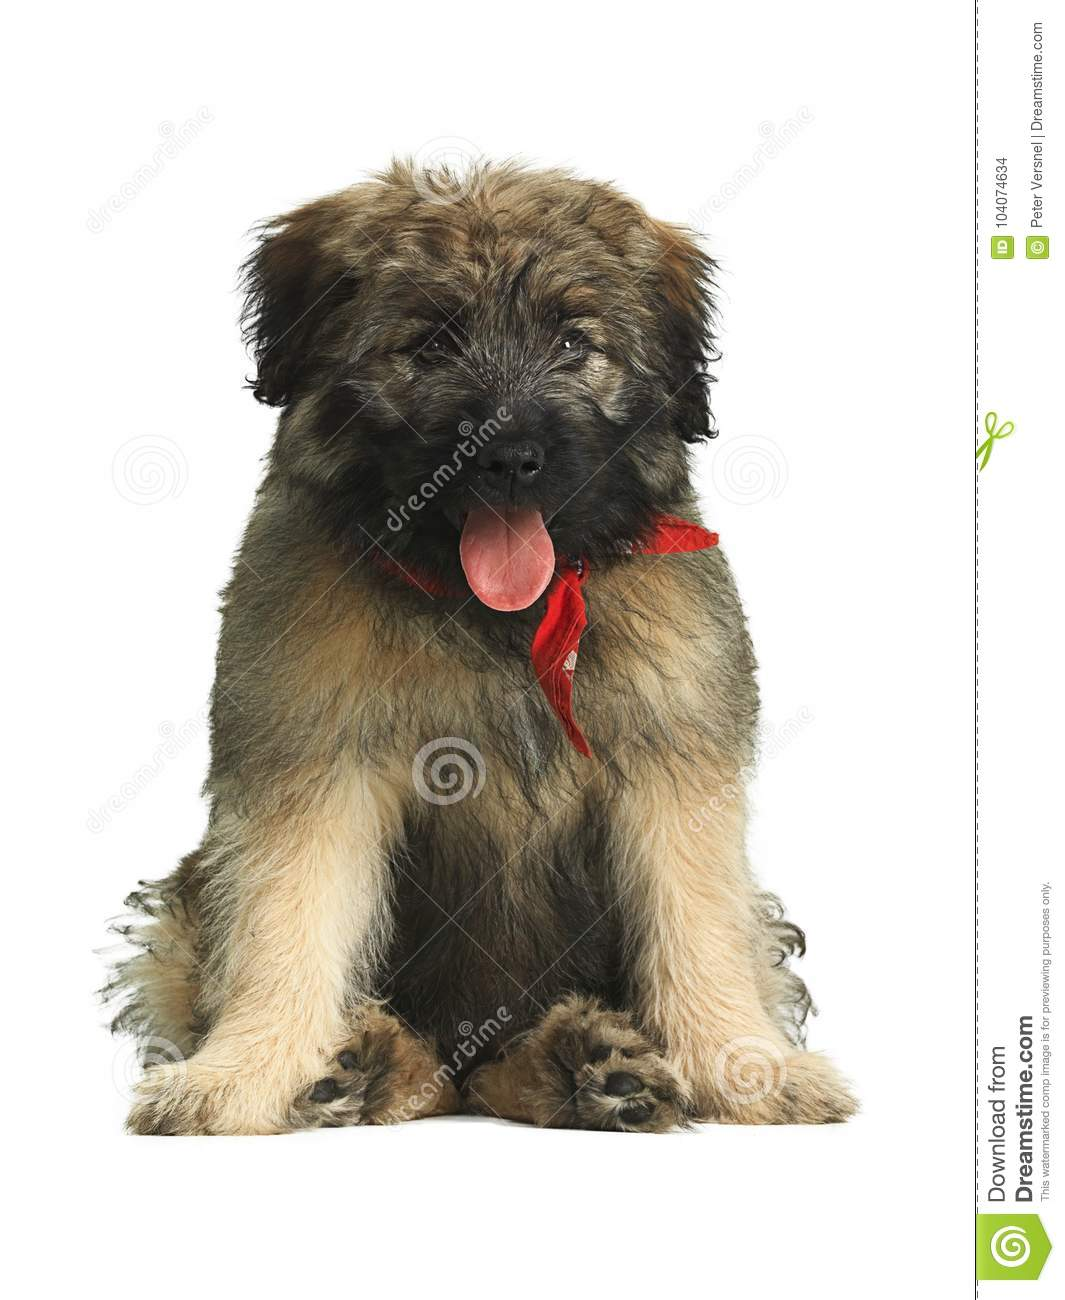 Long haired Catalan Sheepdog puppy with red scarf sitting in a funny way.